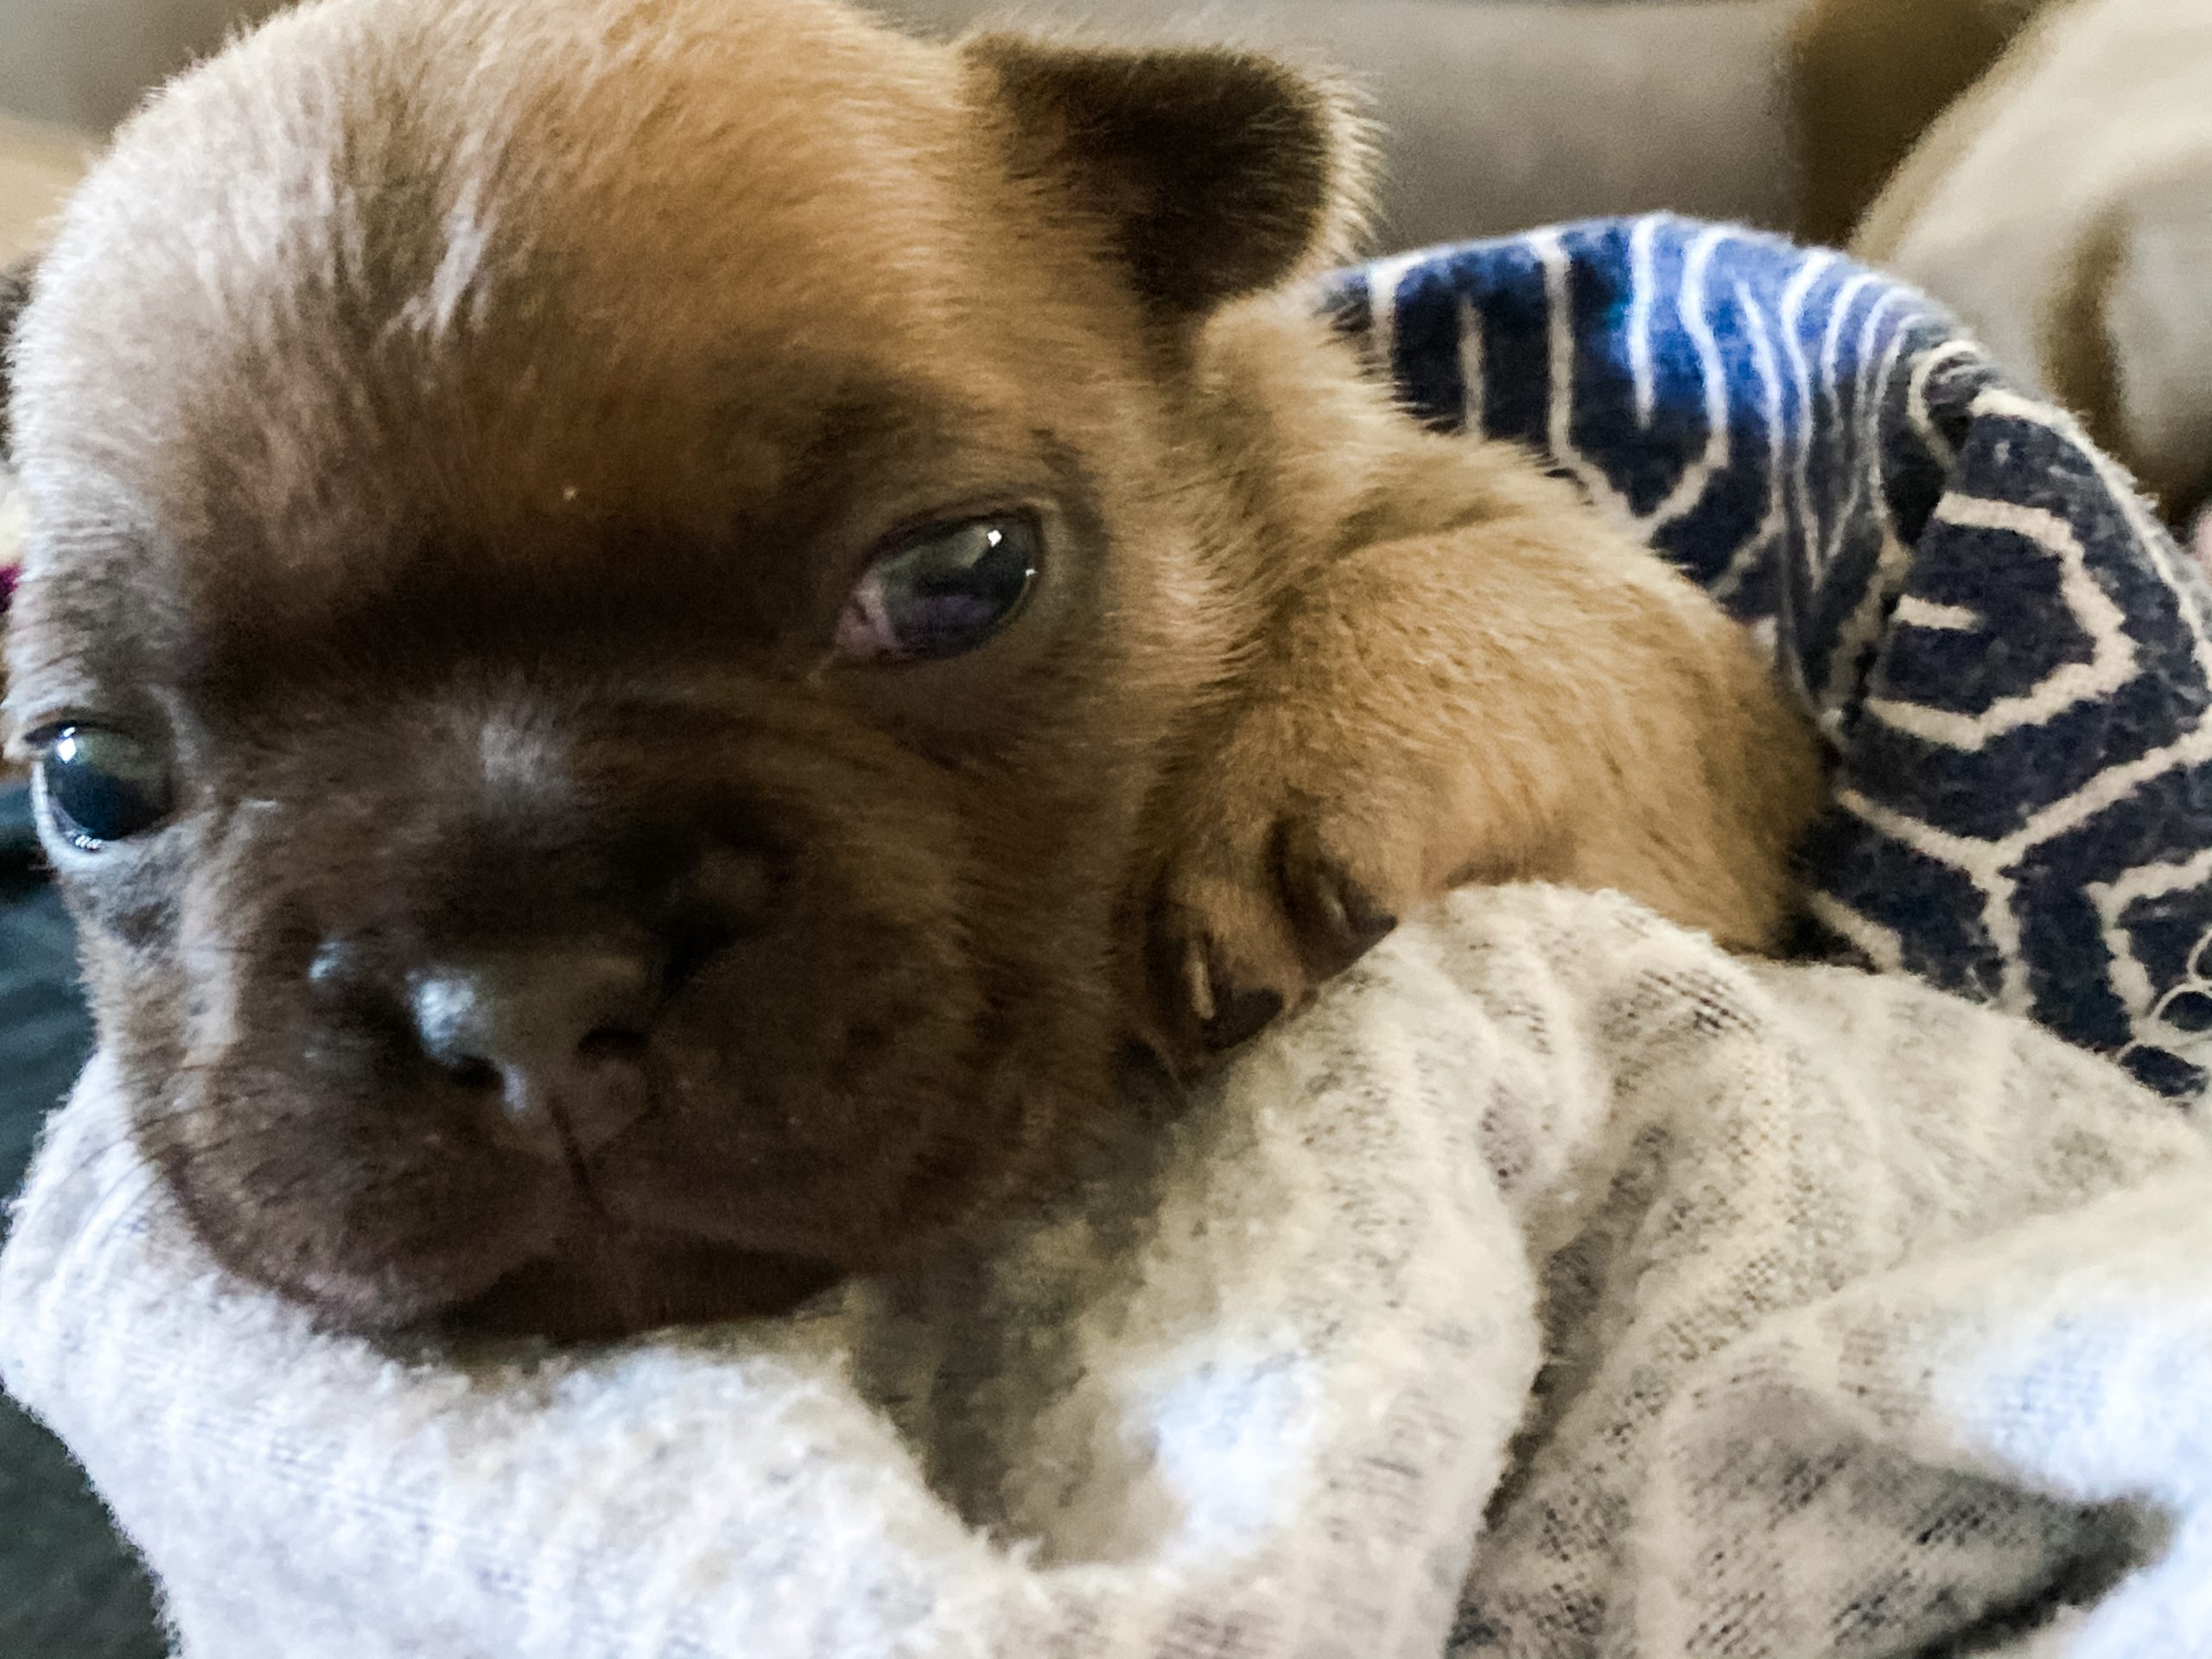 Pogues - AKC French Bulldog puppy for sale in Torrance, California